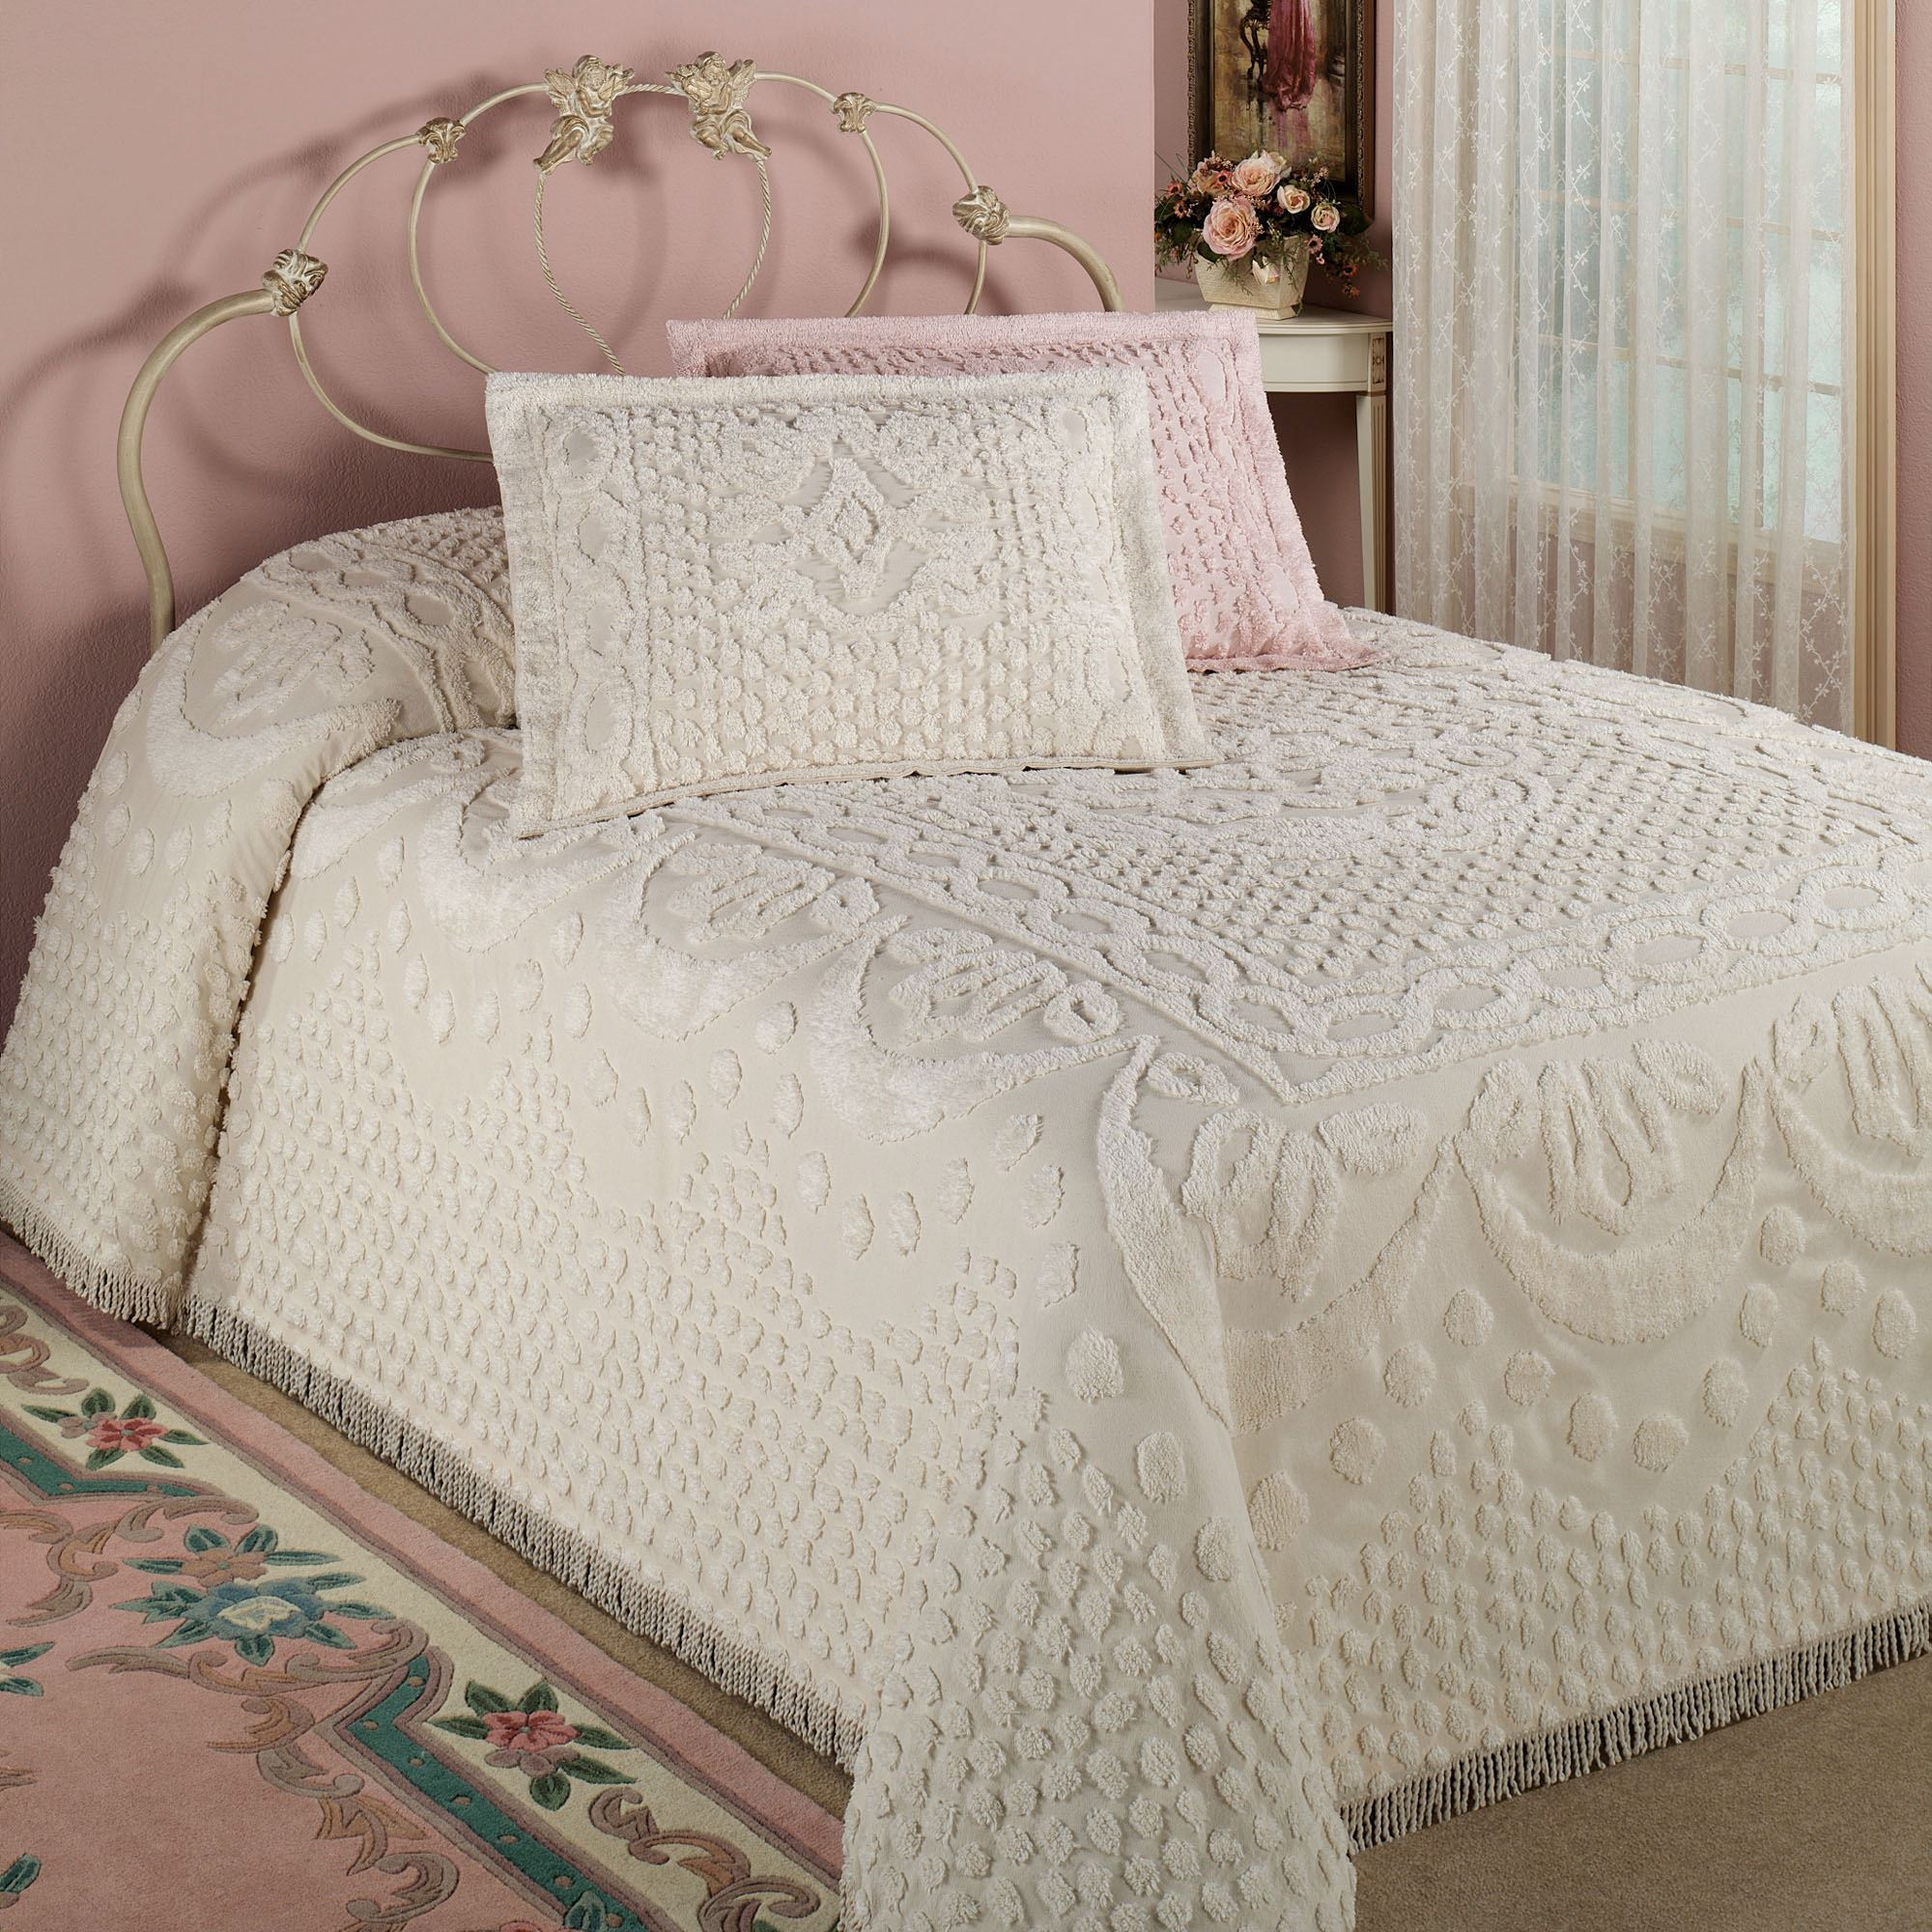 Queen Bedspreads | Bed Coverlets | Bed Bath and Beyond Comforter Sets